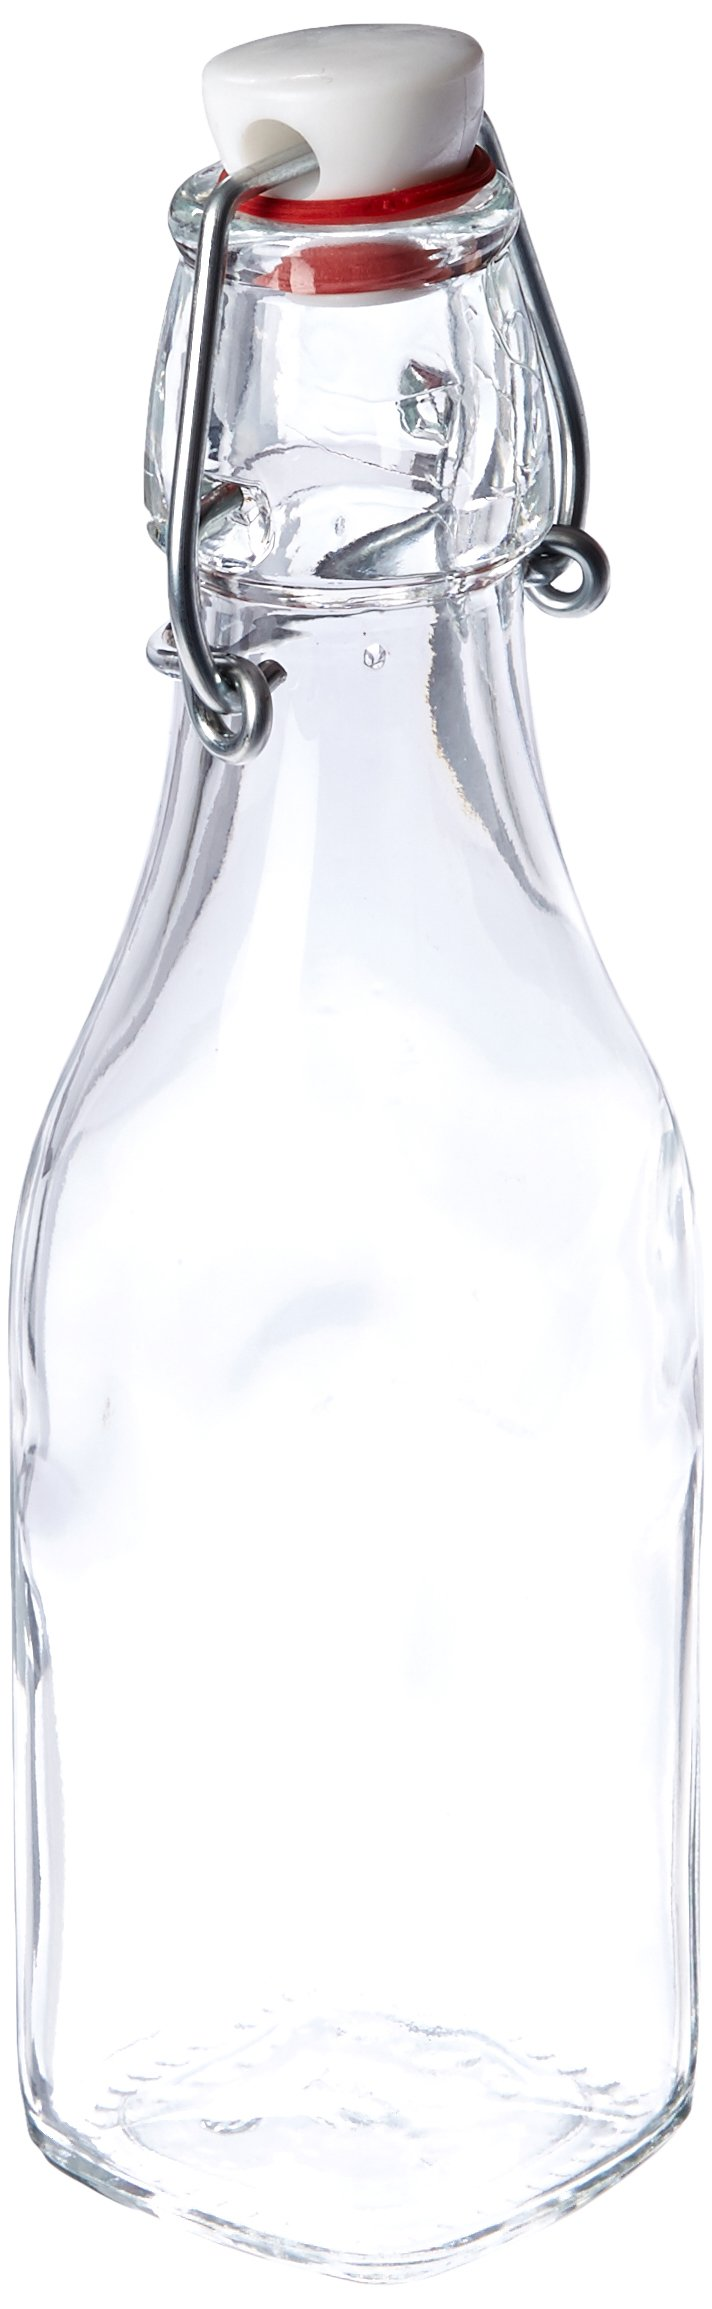 Bormioli Rocco Swing Bottle, 8.5 oz, Clear